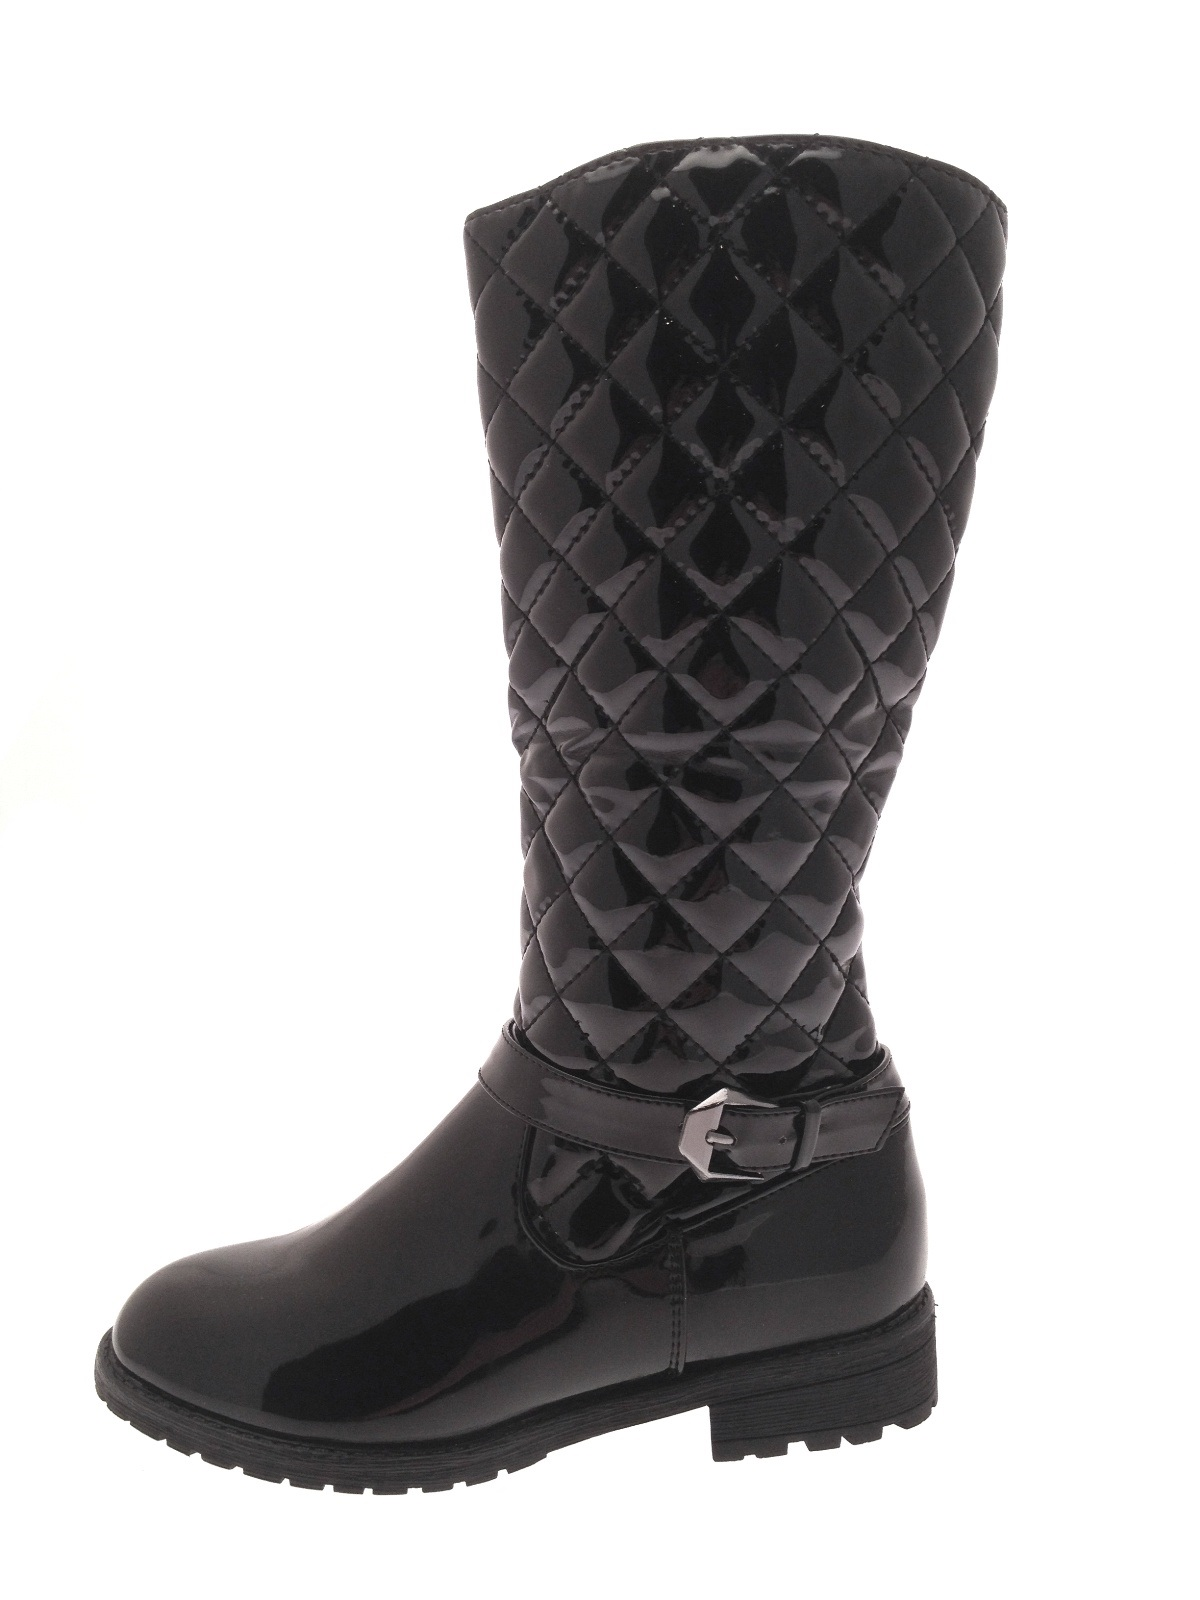 Girls Quilted Ankle / Knee High Boots Fashion Riding Biker Shoes Size UK 10 - 3